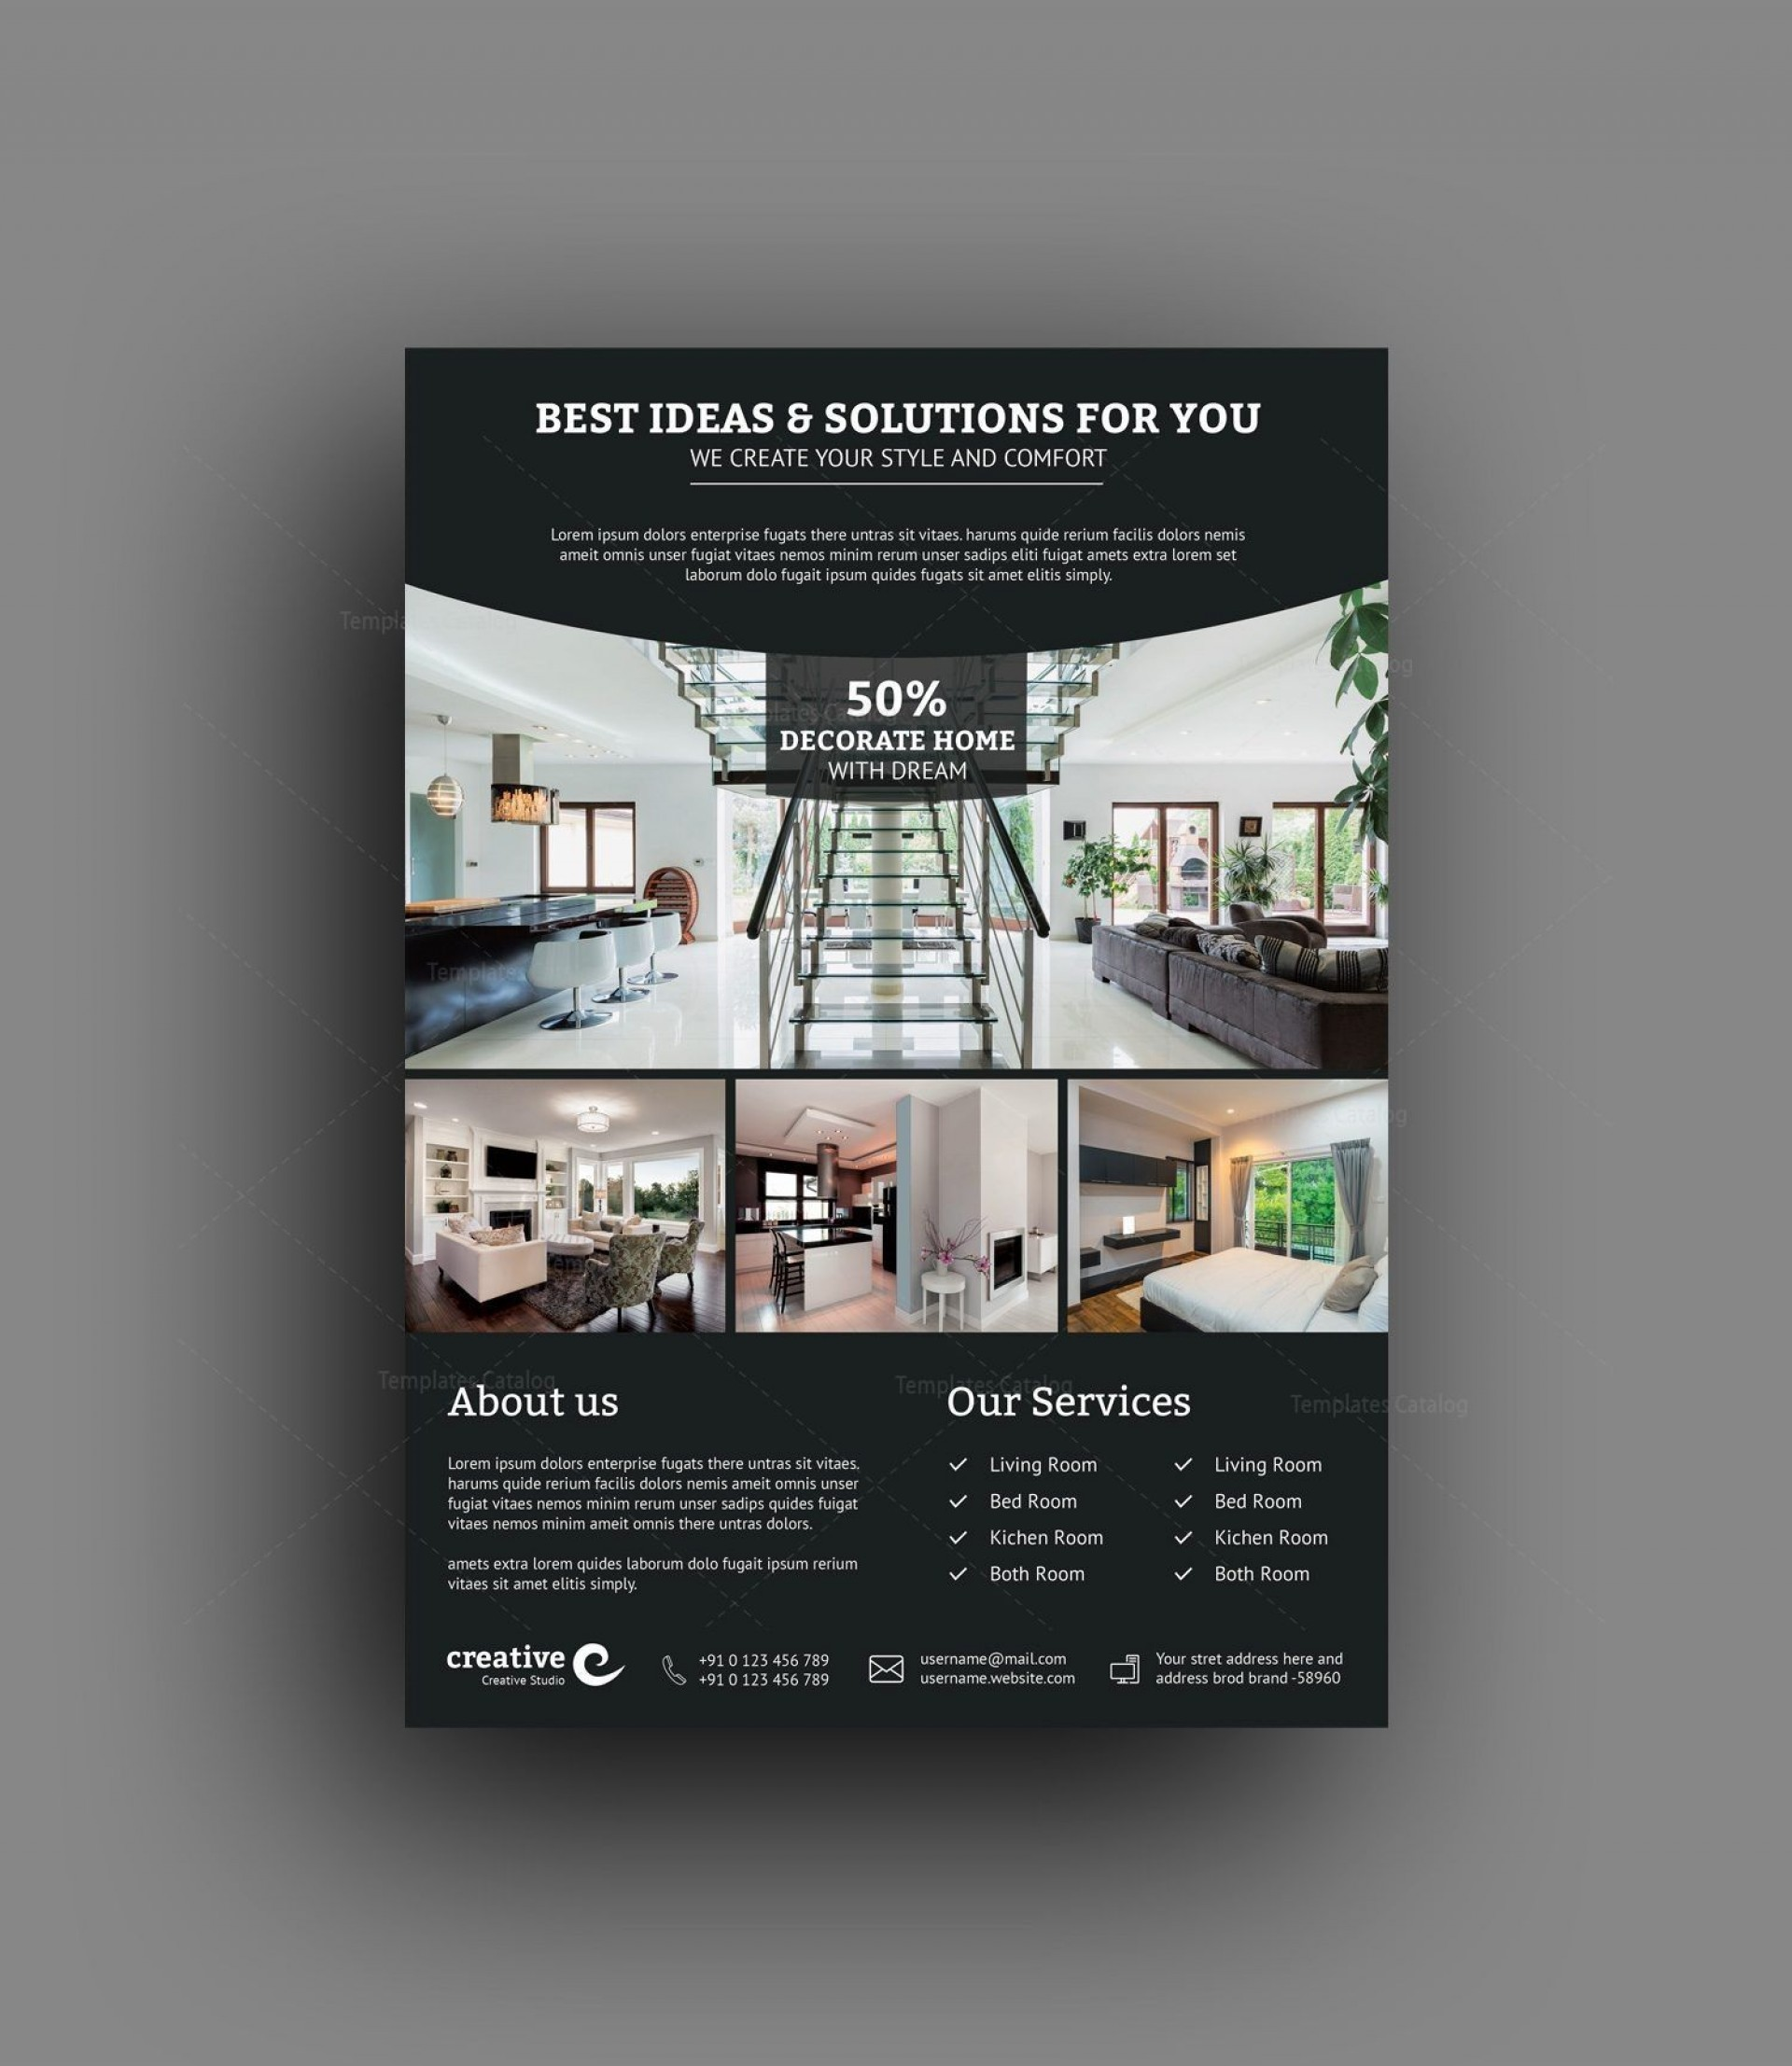 001 Unforgettable In Design Flyer Template Inspiration  Templates Indesign Free For Mac Event1920